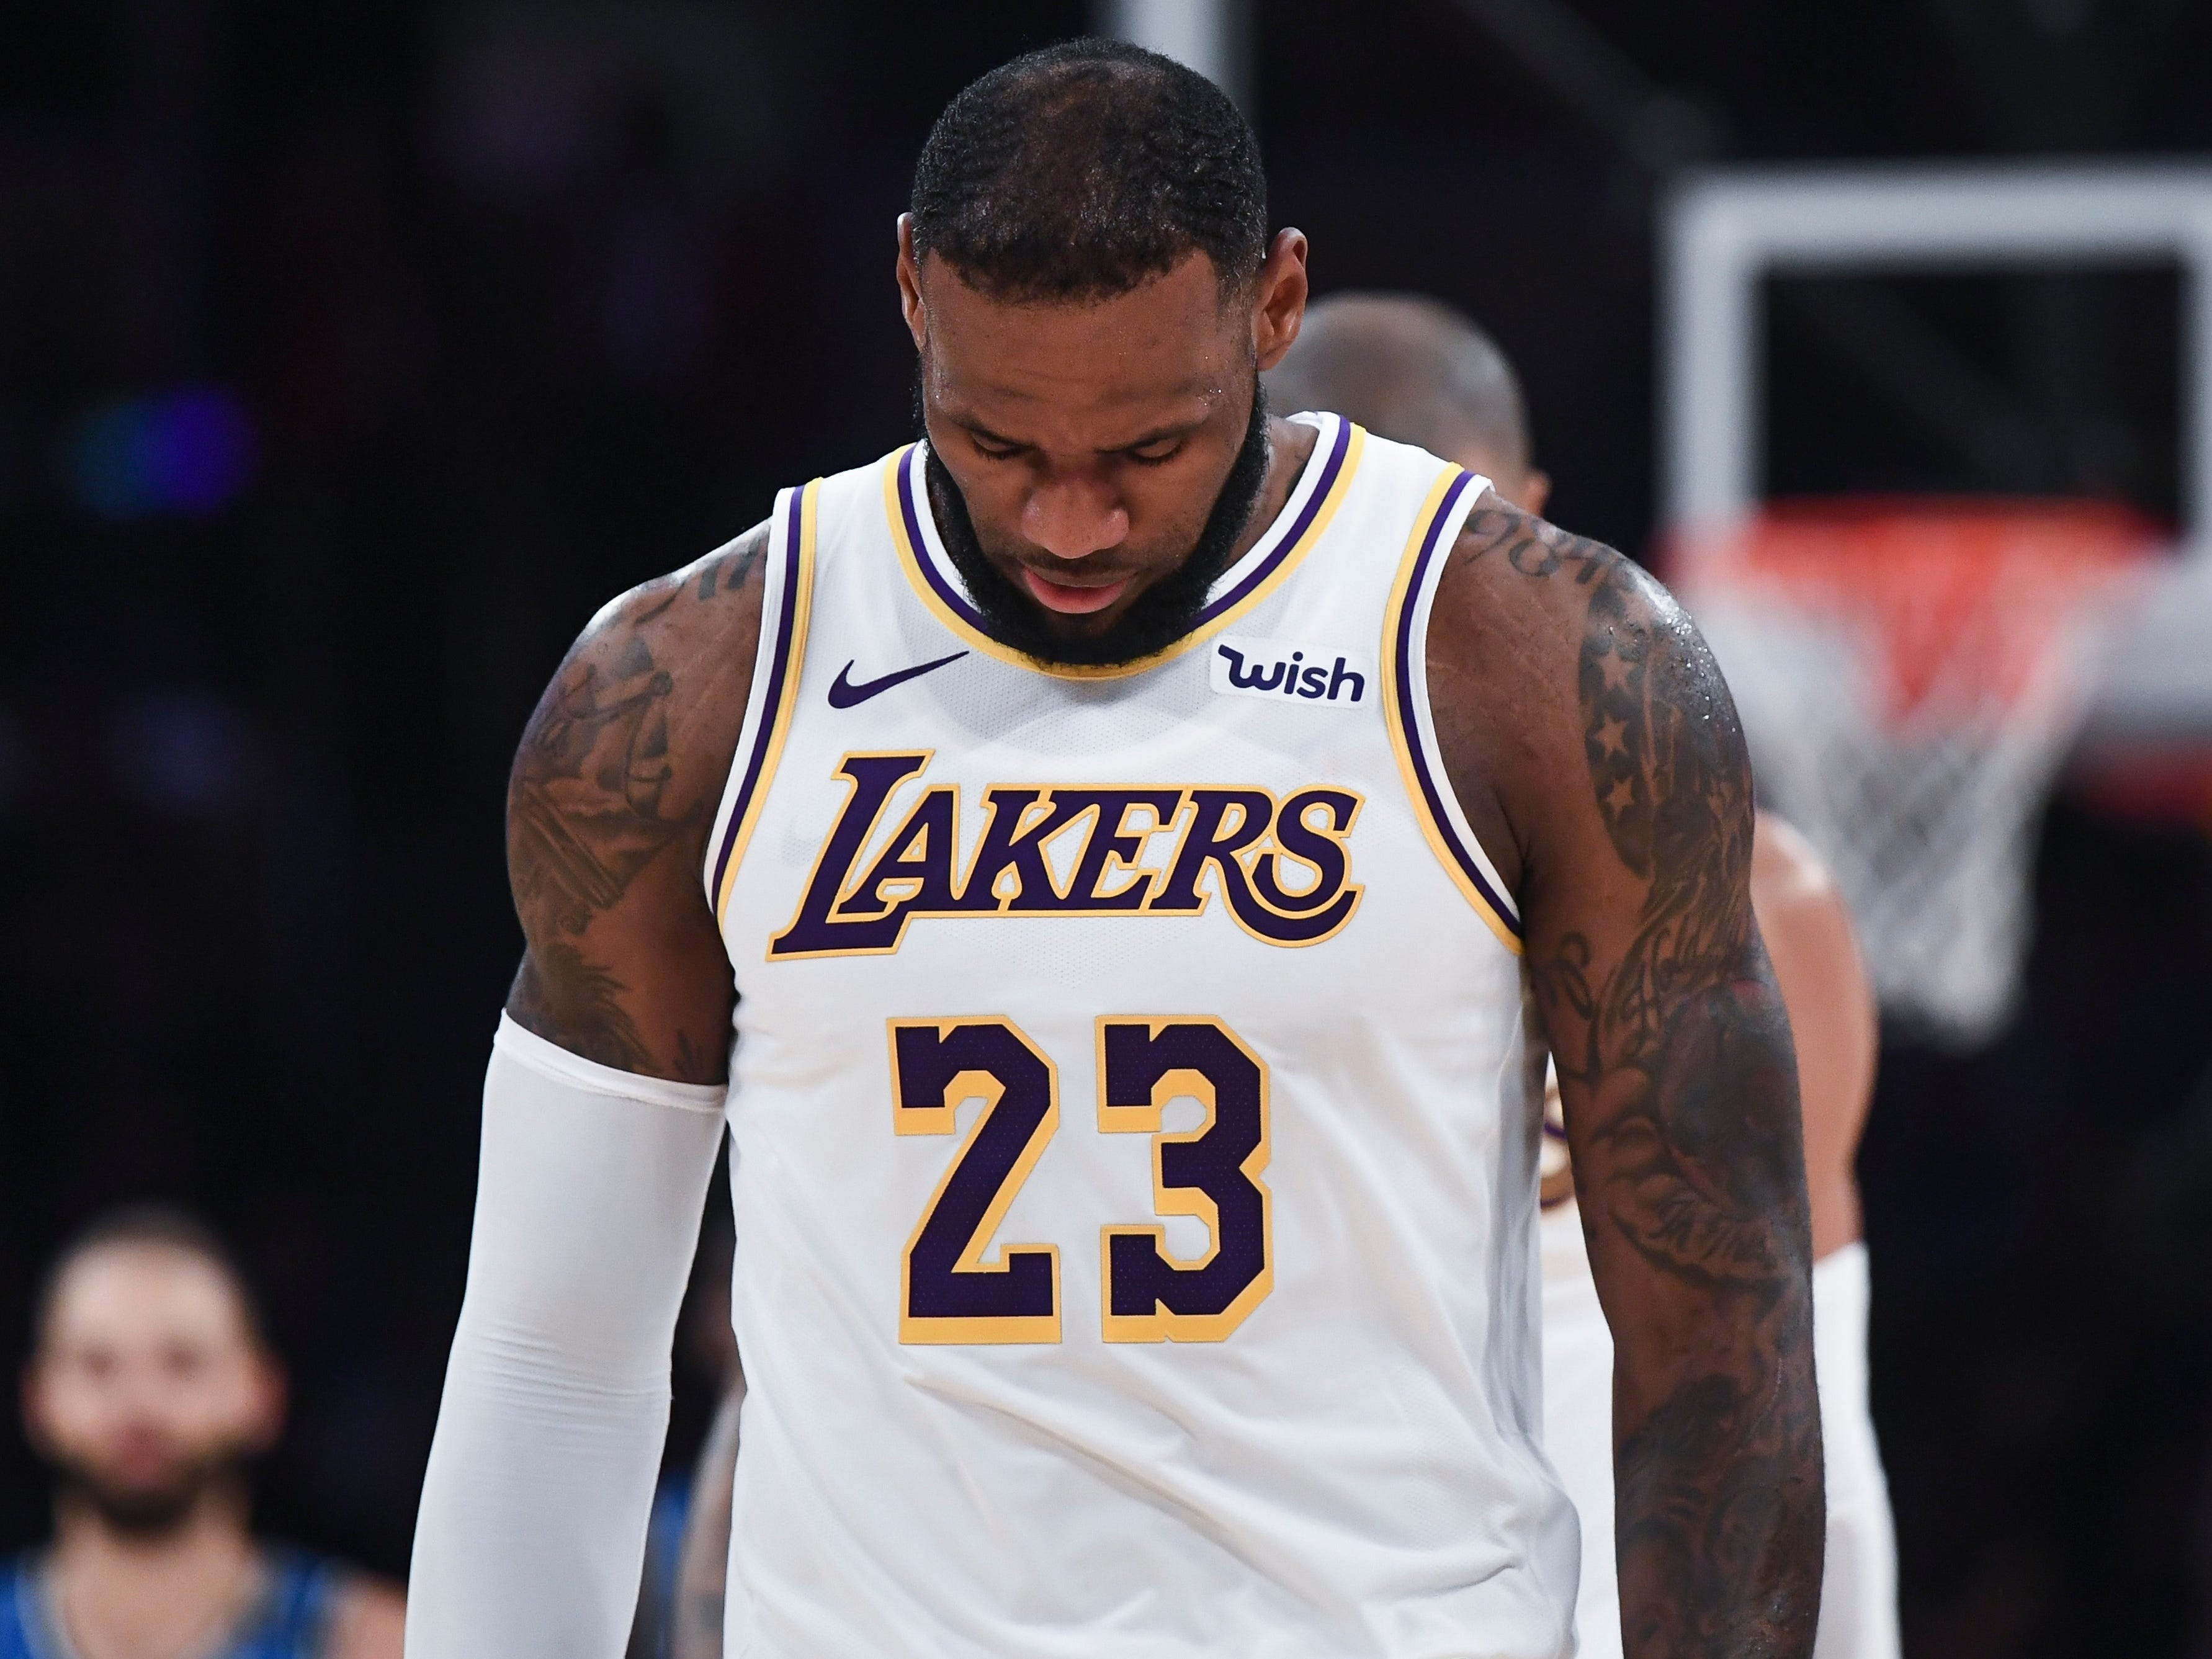 Nov. 25, 2018: LeBron James hangs his head as the Lakers cough up a fourth-quarter lead in a home loss to the Magic.